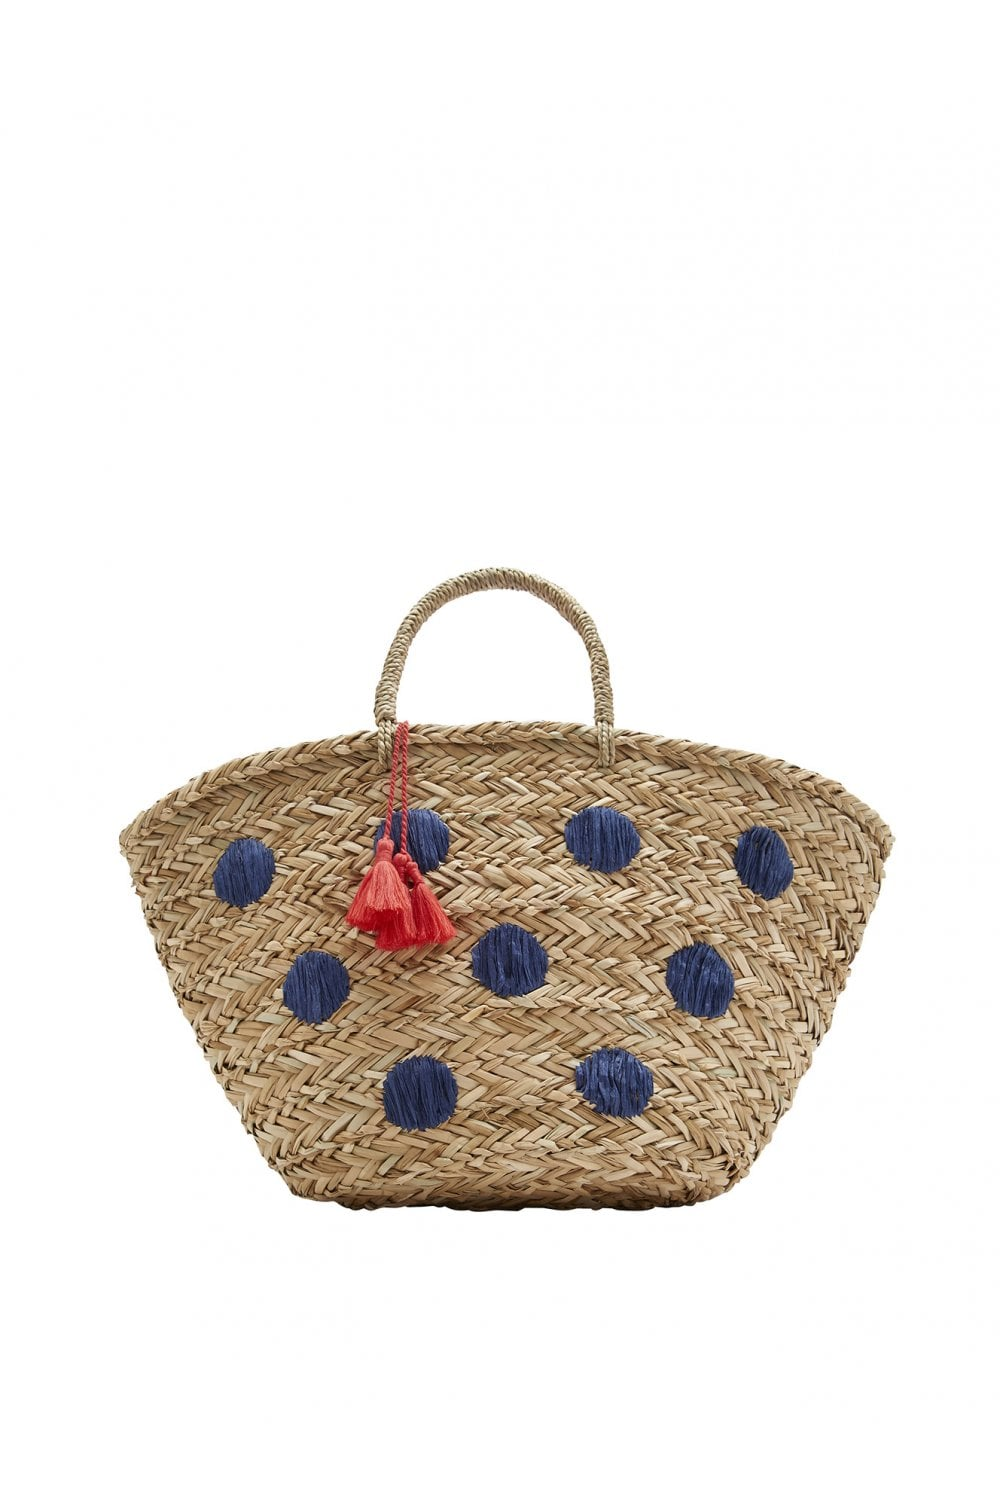 a0cf46939ccb Joules Womens Amalfi Summer Bag - Spot - Womenswear from Potters of ...